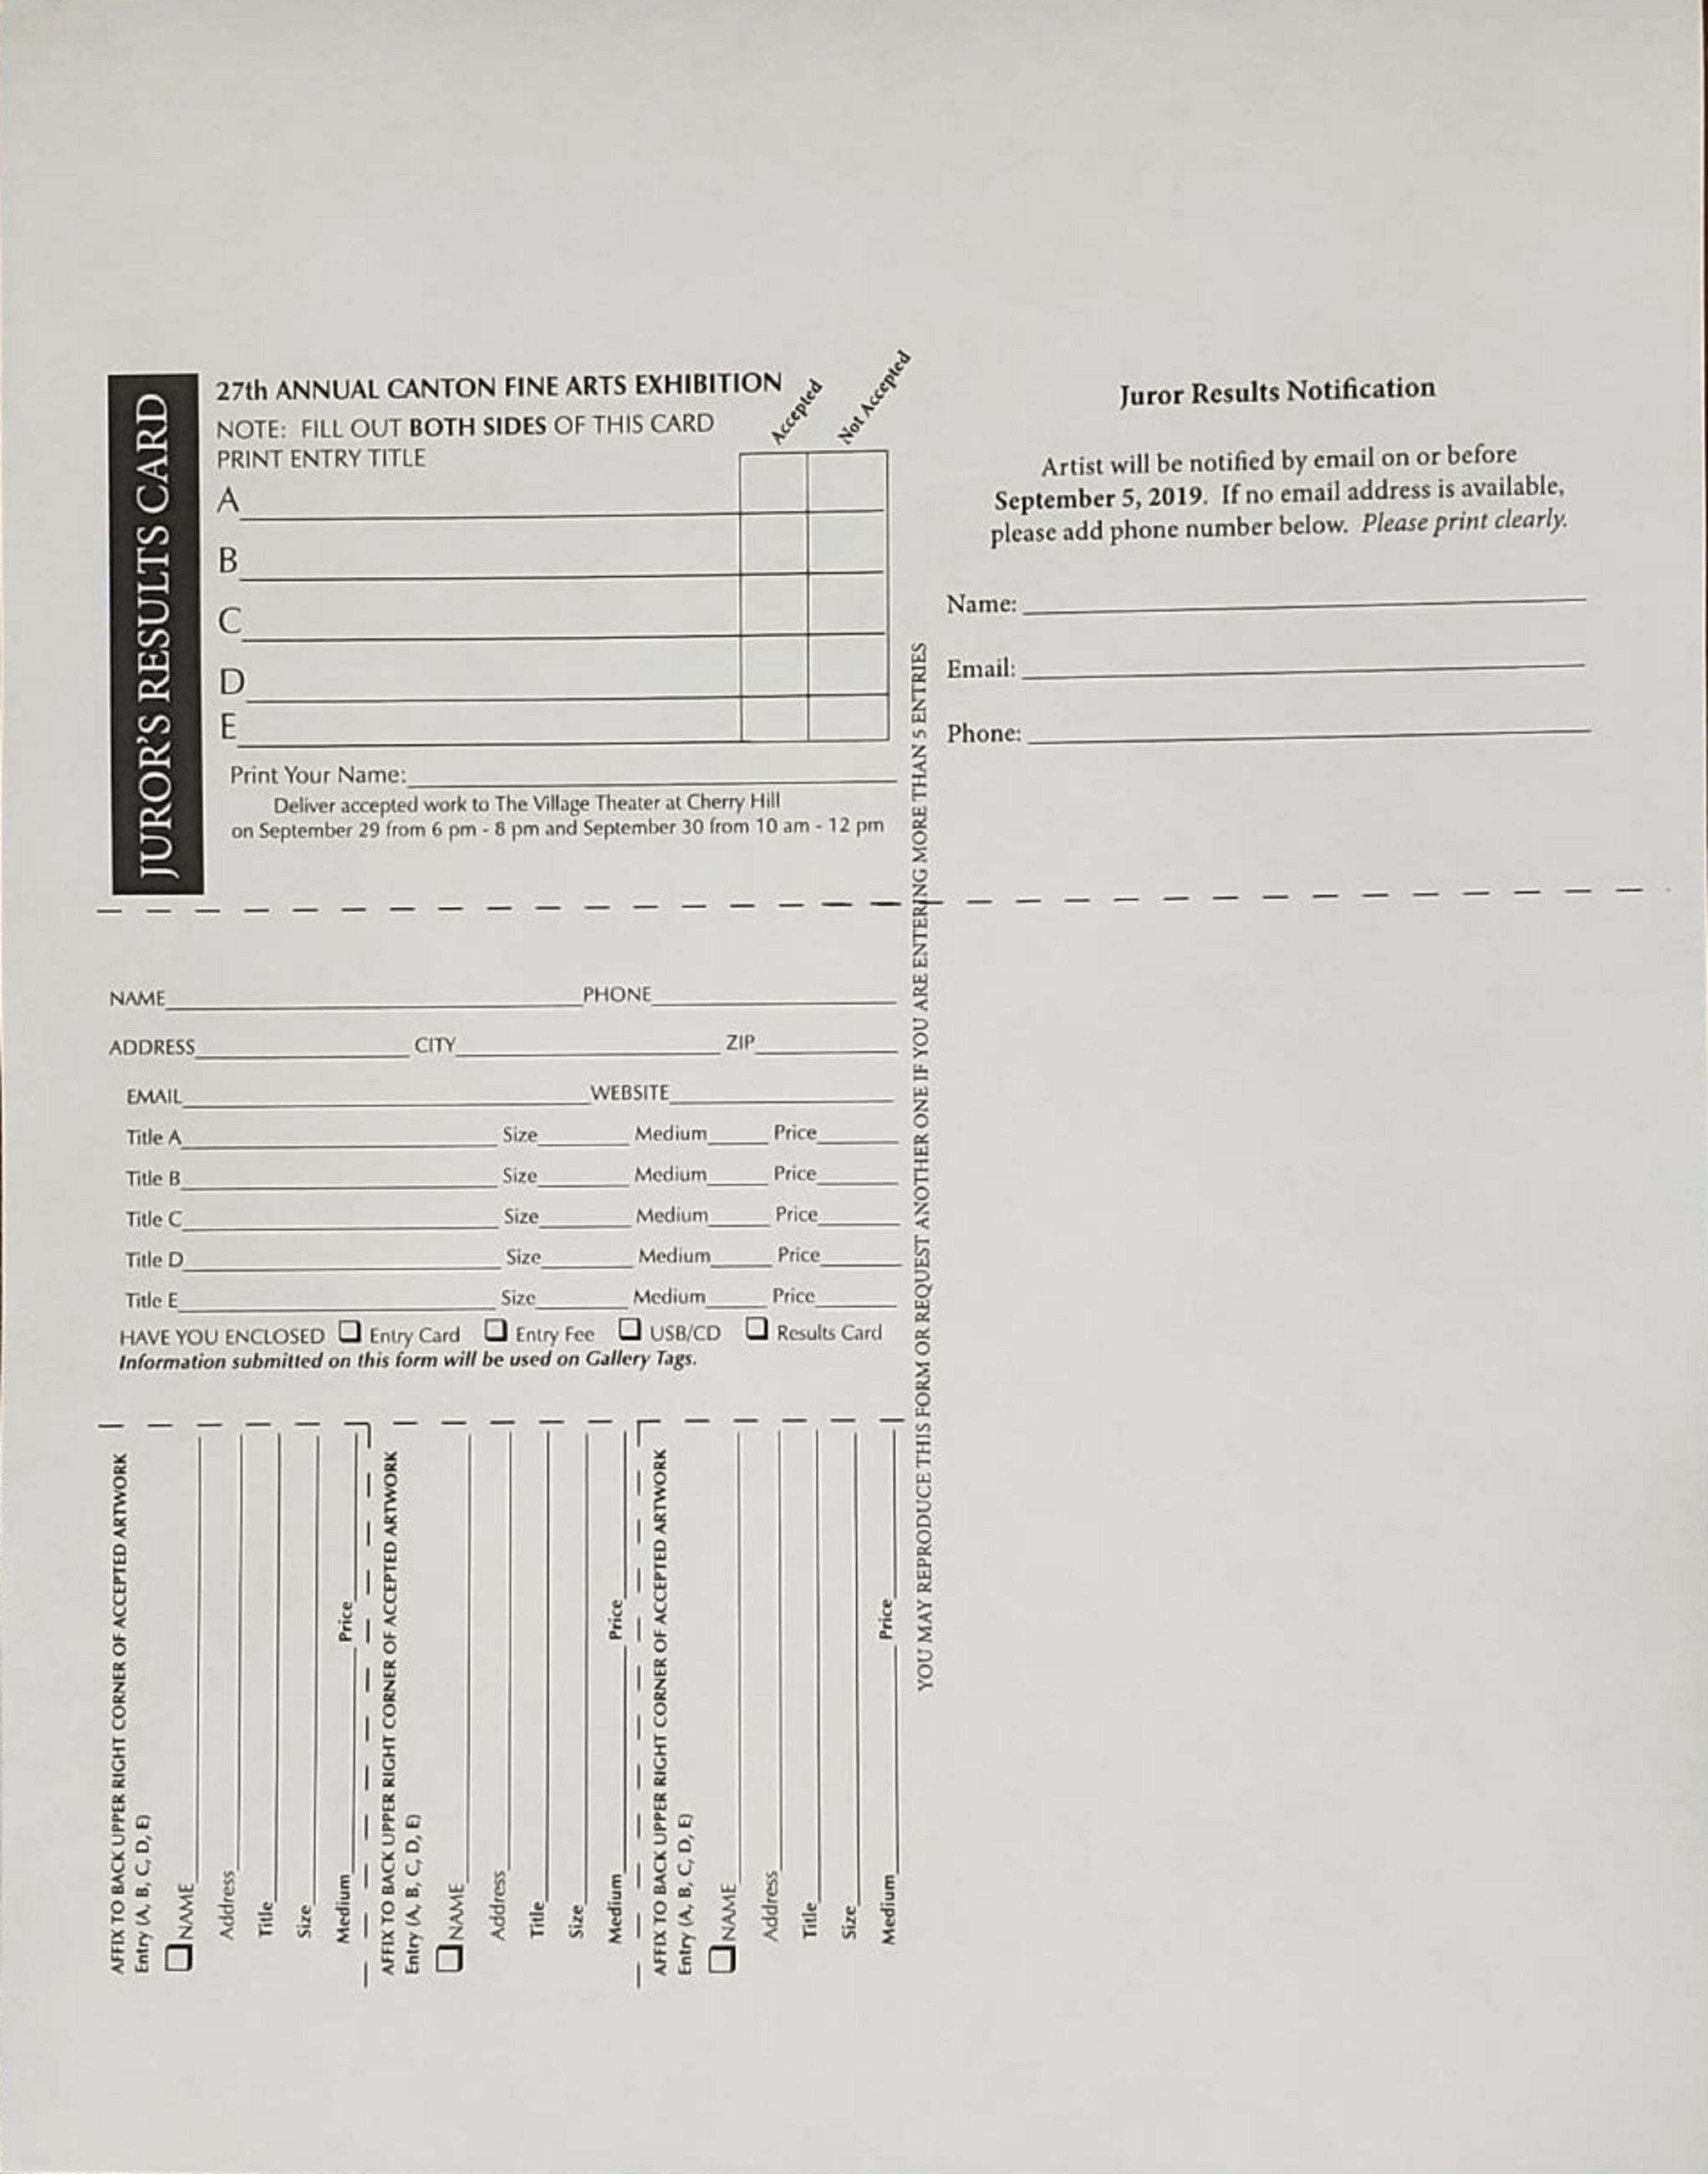 Entry Form and Jurors Results Card